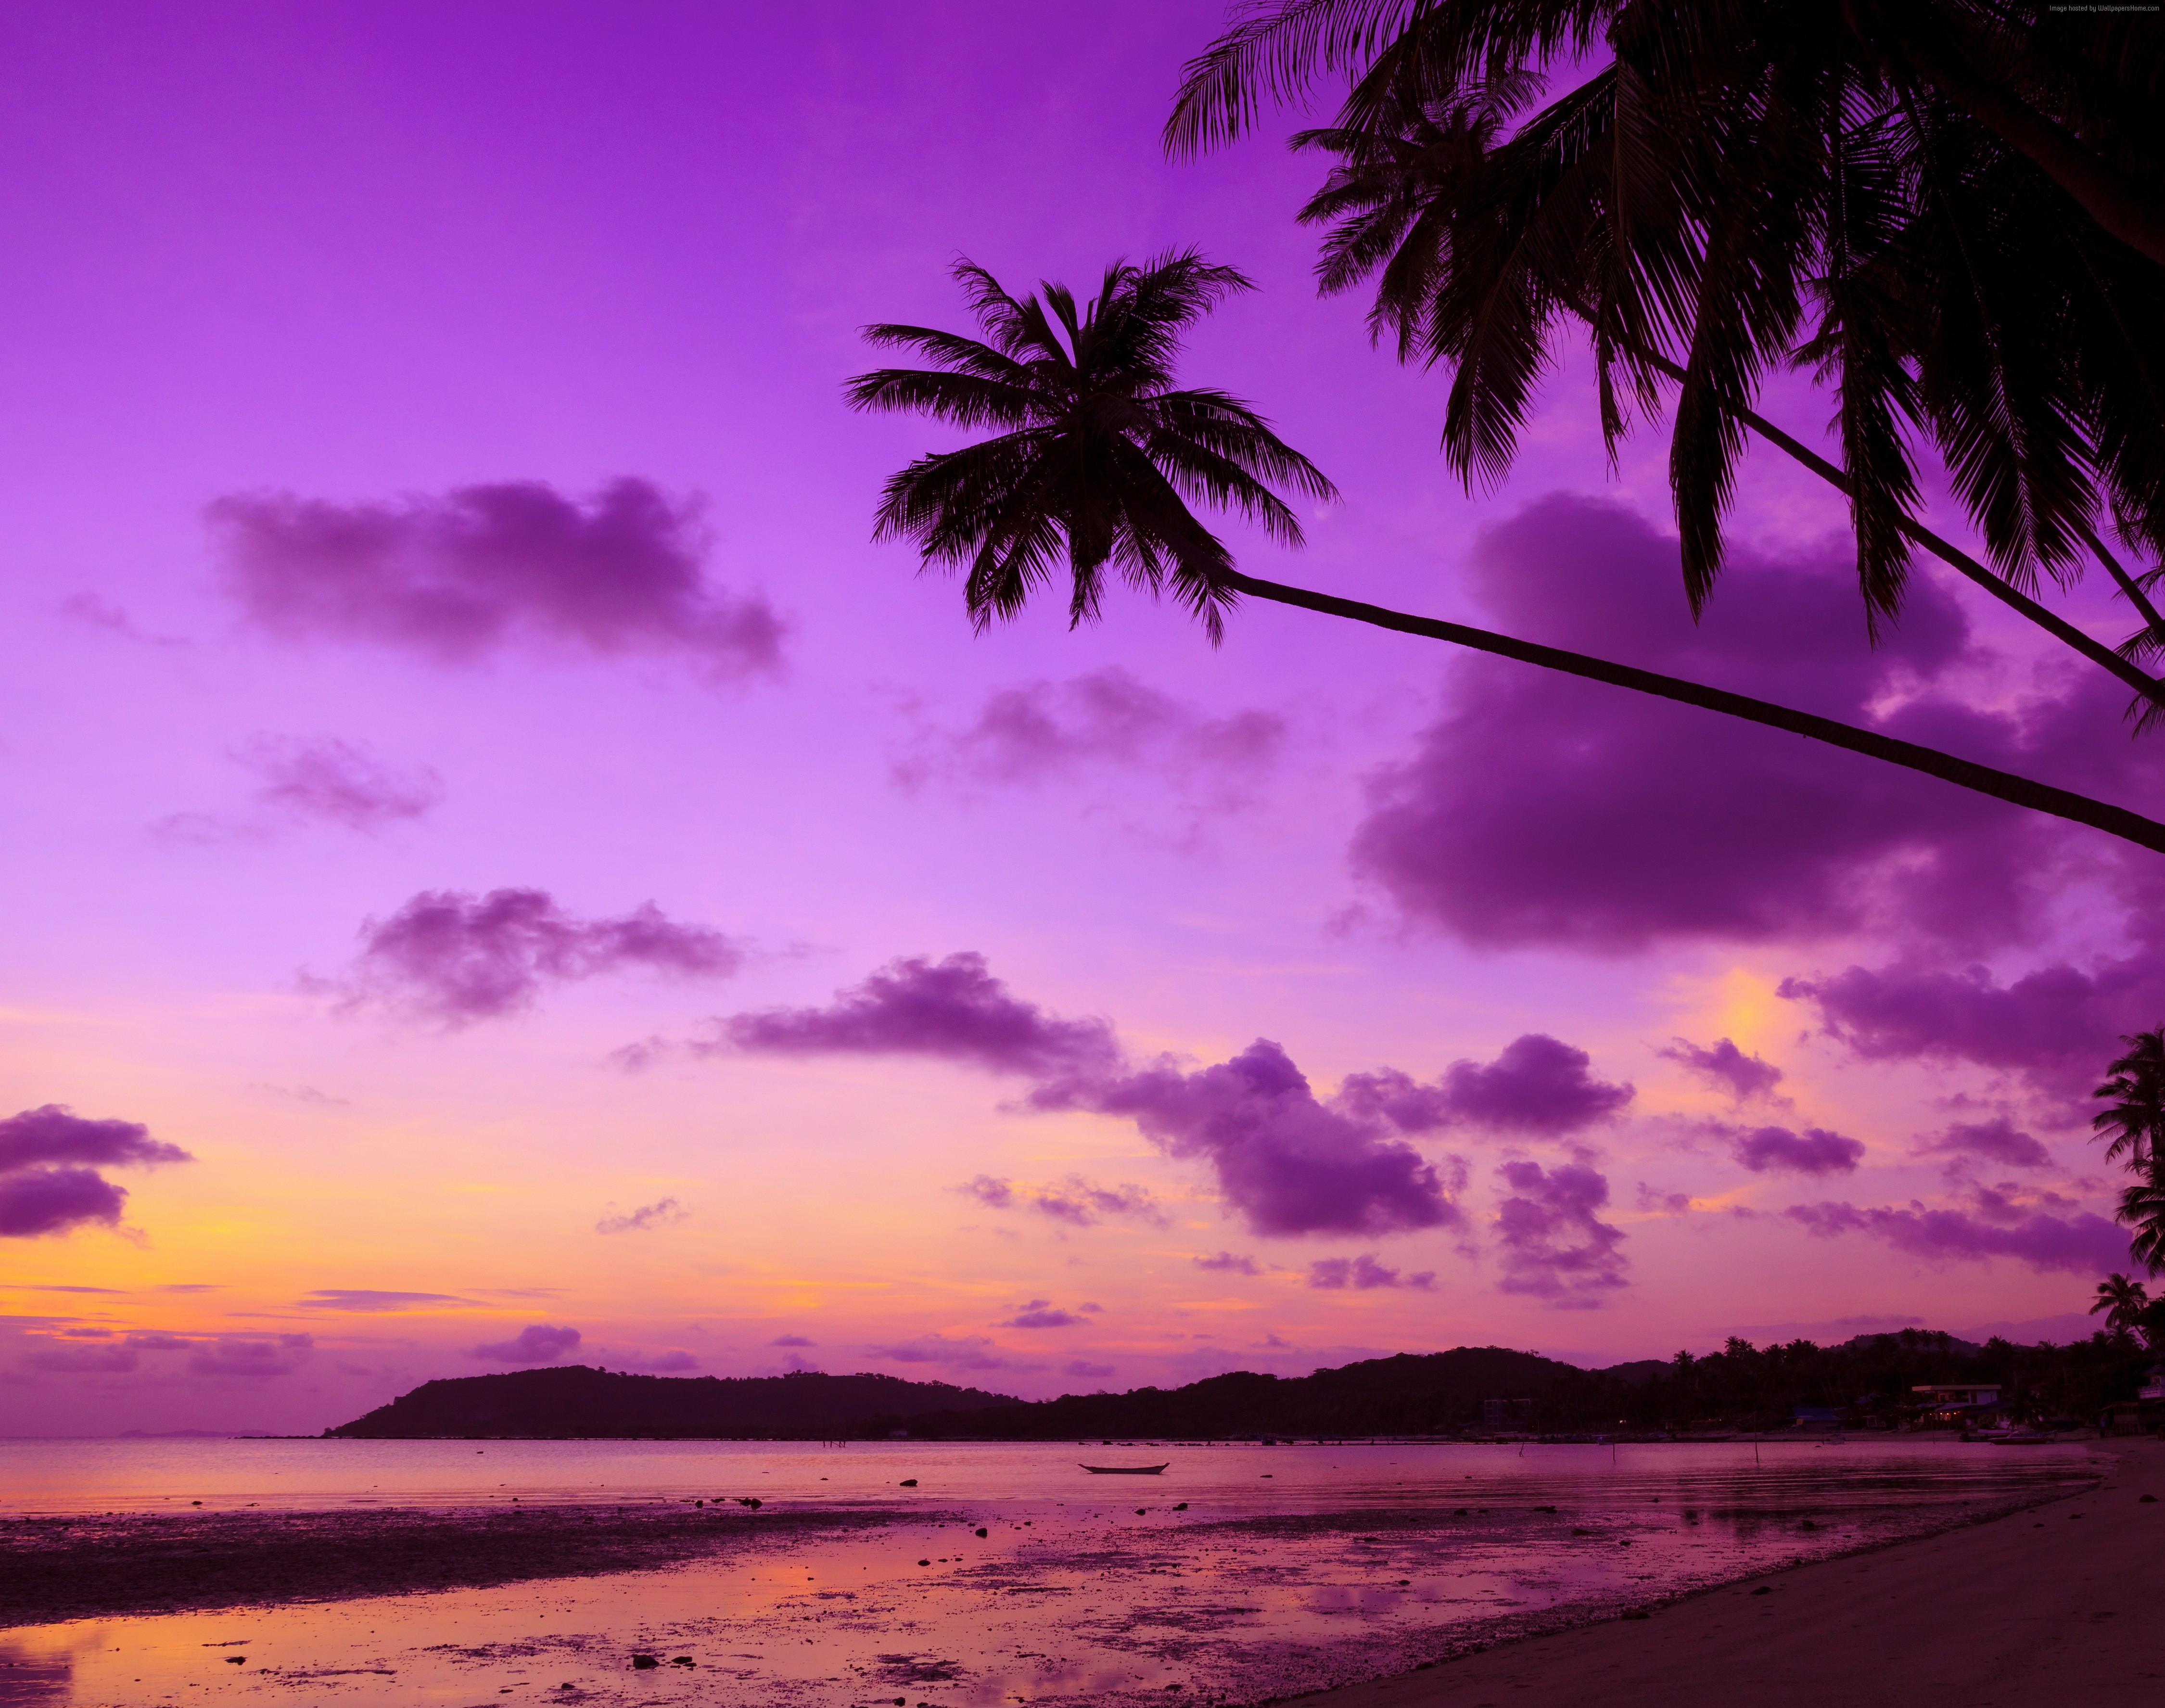 2048x2048 Anthem Ipad Air Hd 4k Wallpapers Images: 2048x2048 Purple Palm Tree Ipad Air HD 4k Wallpapers